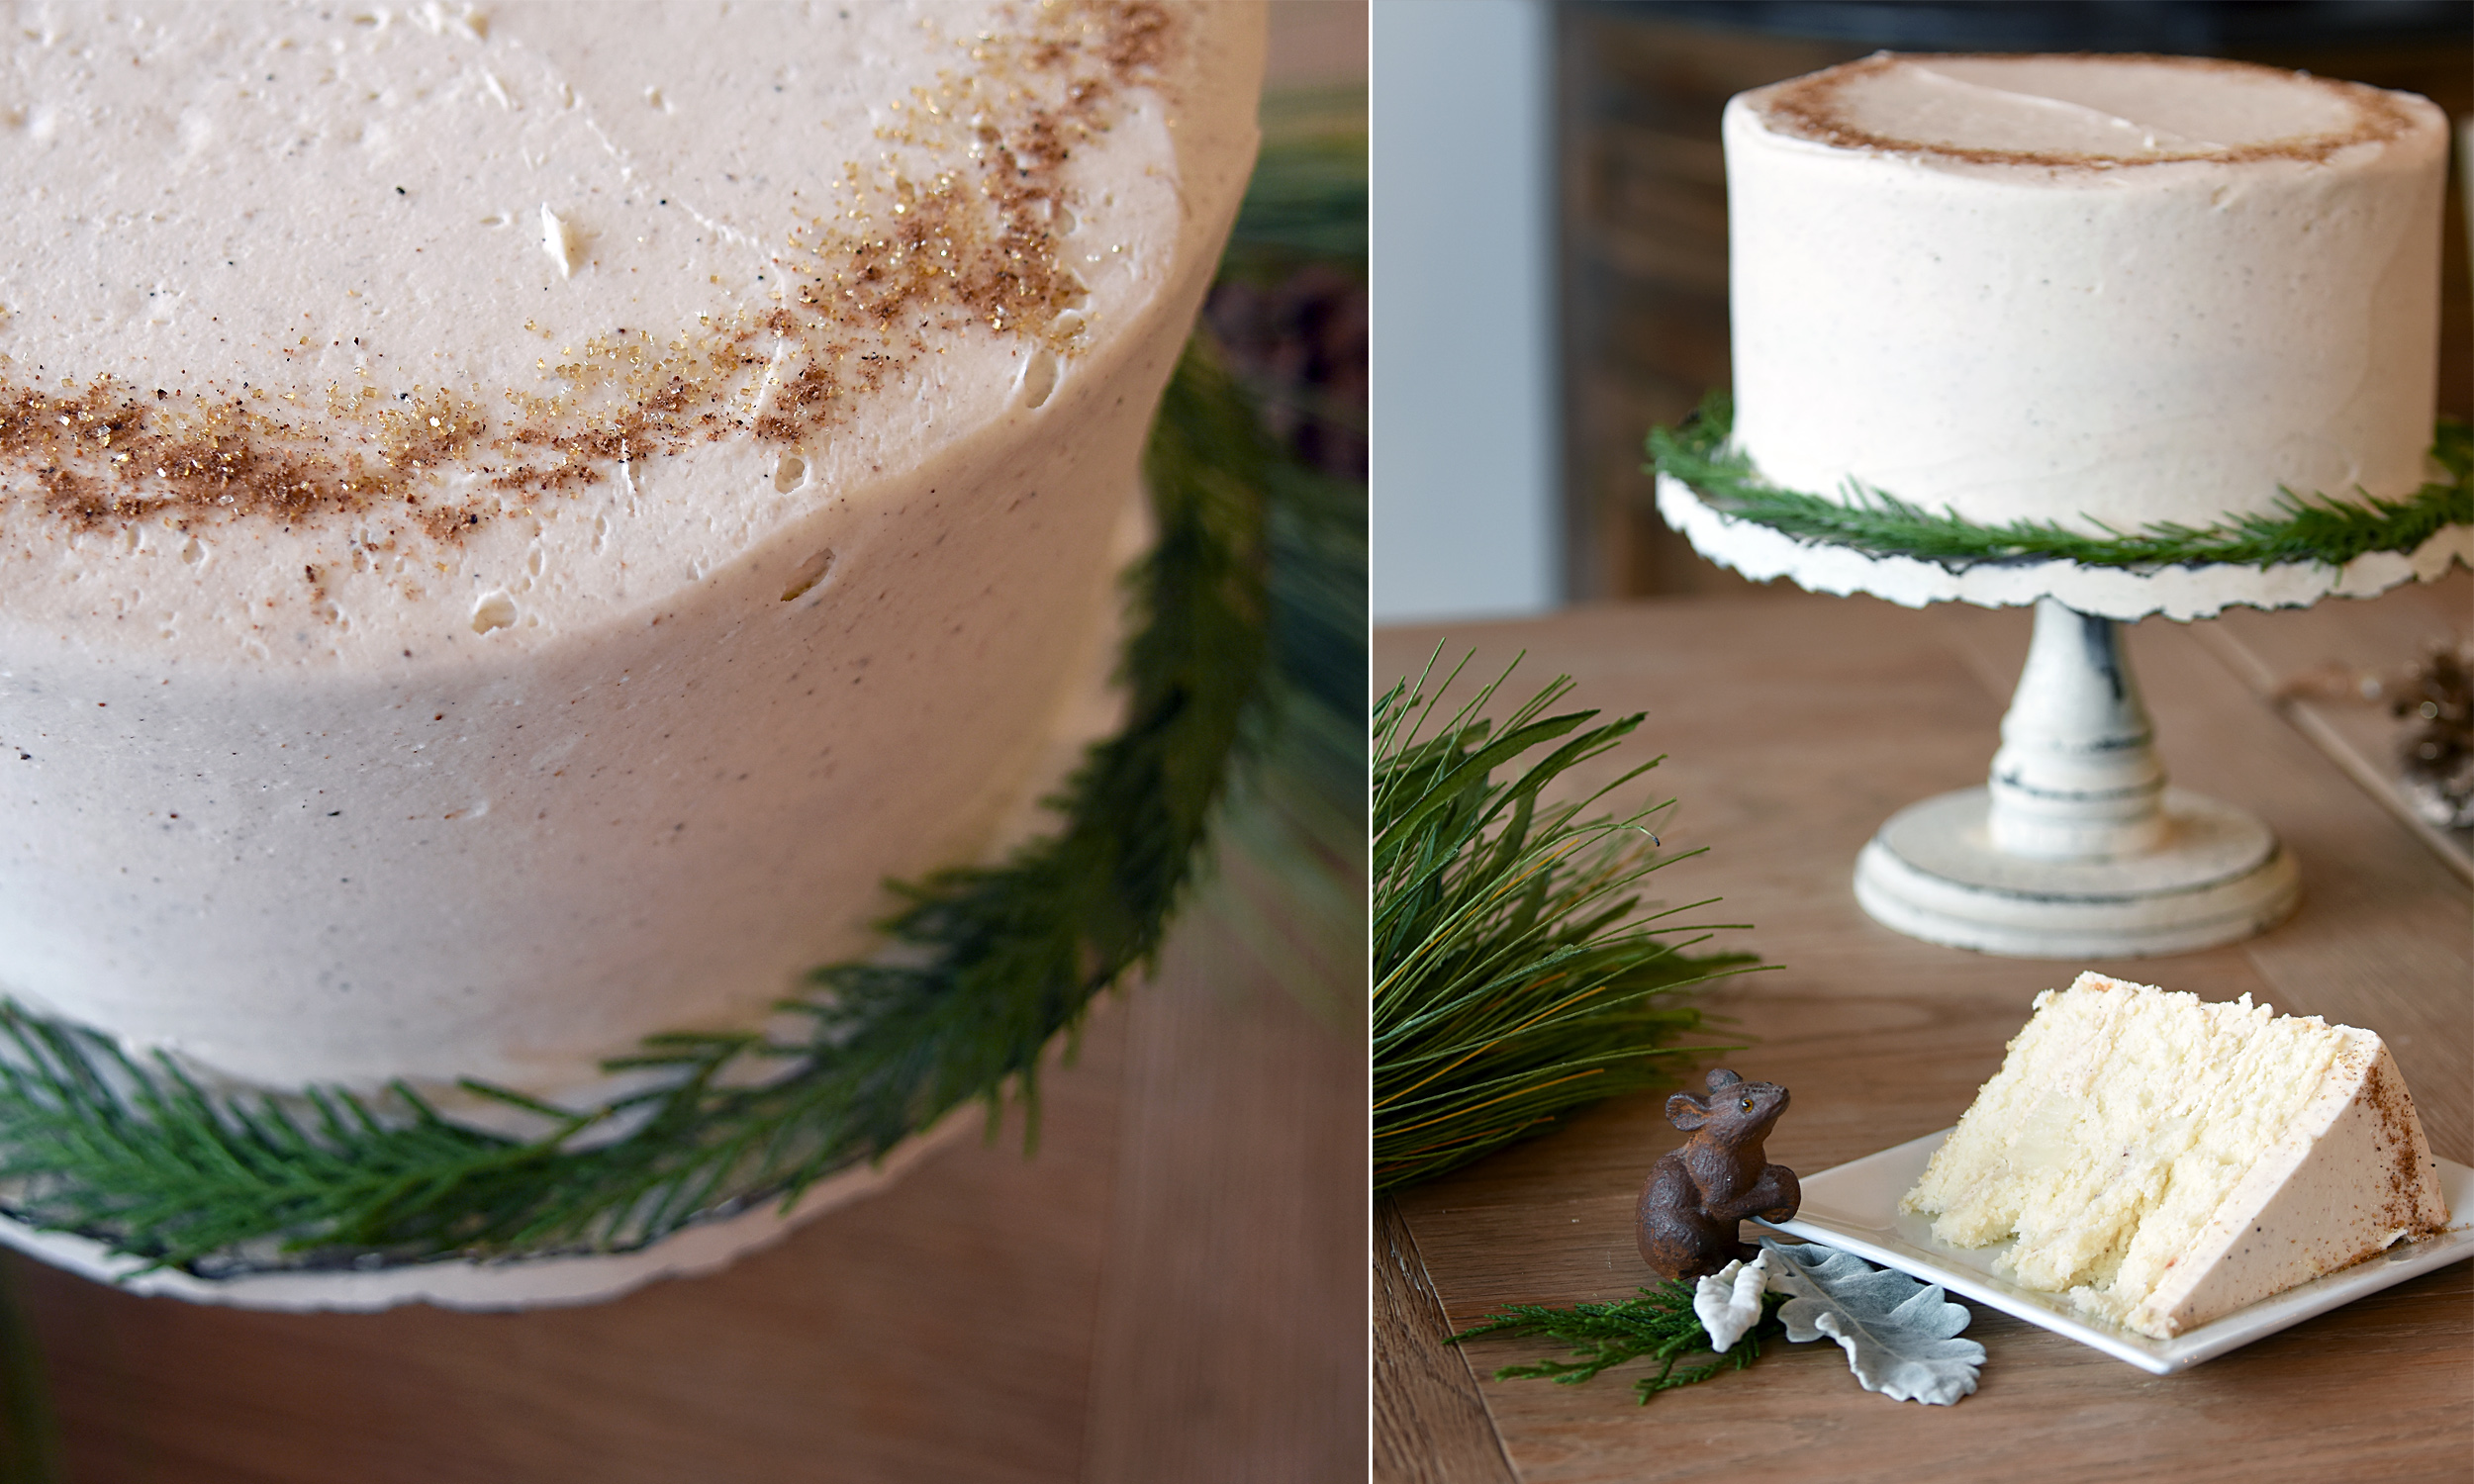 Christmas Cake   35 half / 58 whole  An eggnog layer cake with our small-batch custard filling and a nutmeg buttercream! A truly memorable cake for the holidays! Featuring NC cake flour, local, free-range eggs, organic extracts, and pure rum and brandy! We will be delighted send you on your way with fresh greenery with which to garnish the cake plate! Decorating is half of the fun of the holidays!   (Available during the month of December)